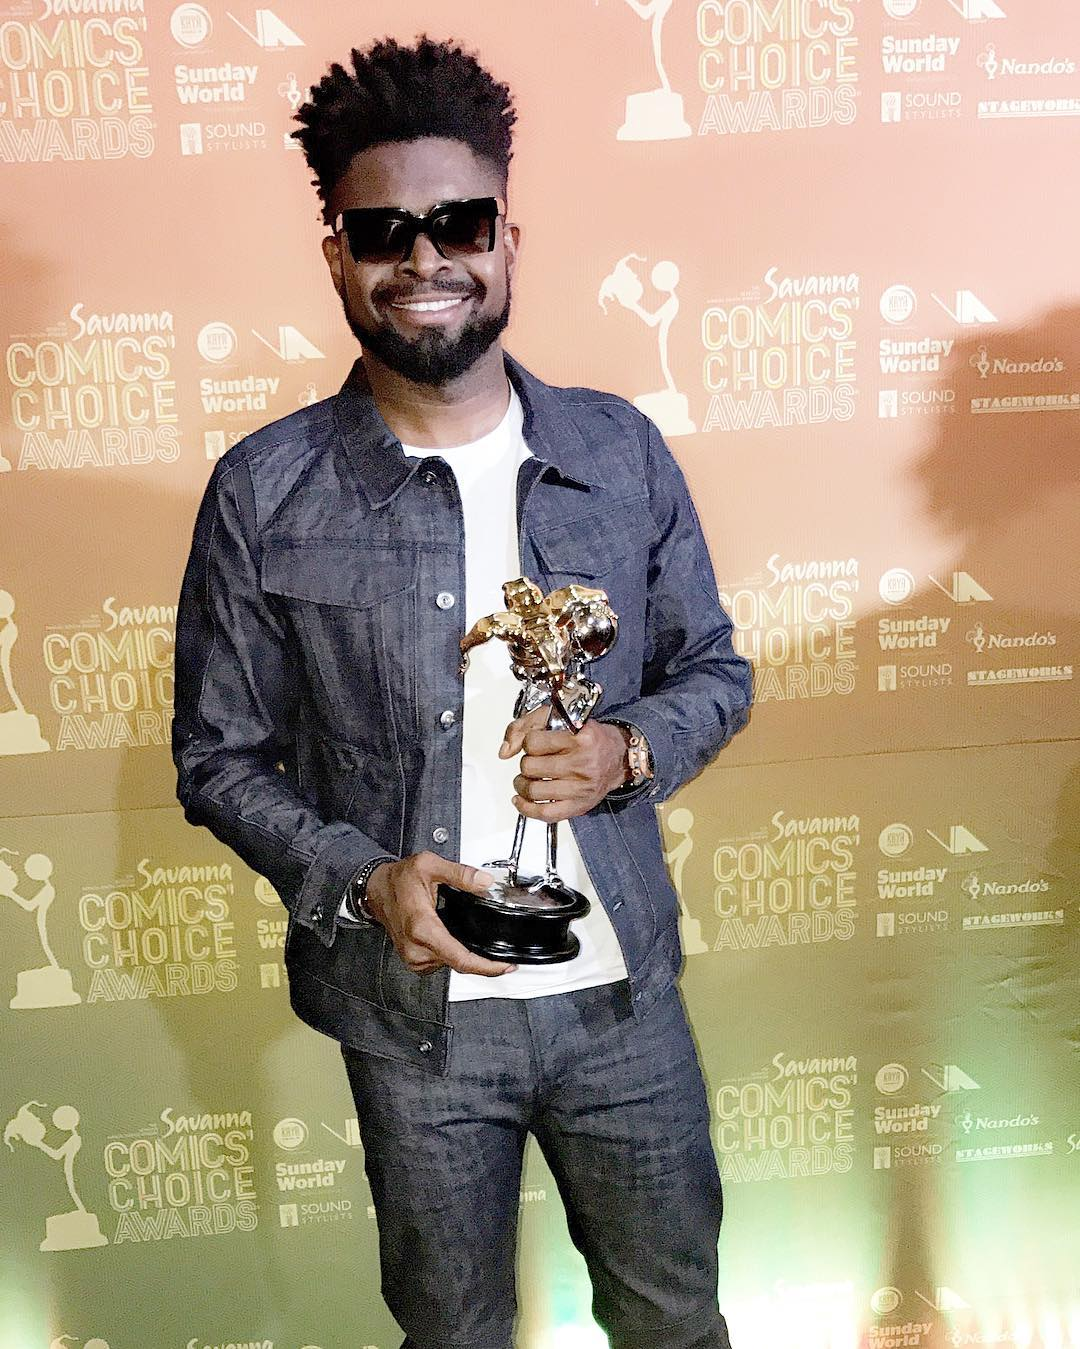 Basketmouth, winner of the Savanna Pan-African Comic Award category at the 2017 Savannah Comic Choice Awards held at the Lyric Theatre in Johannesburg, South Africa.